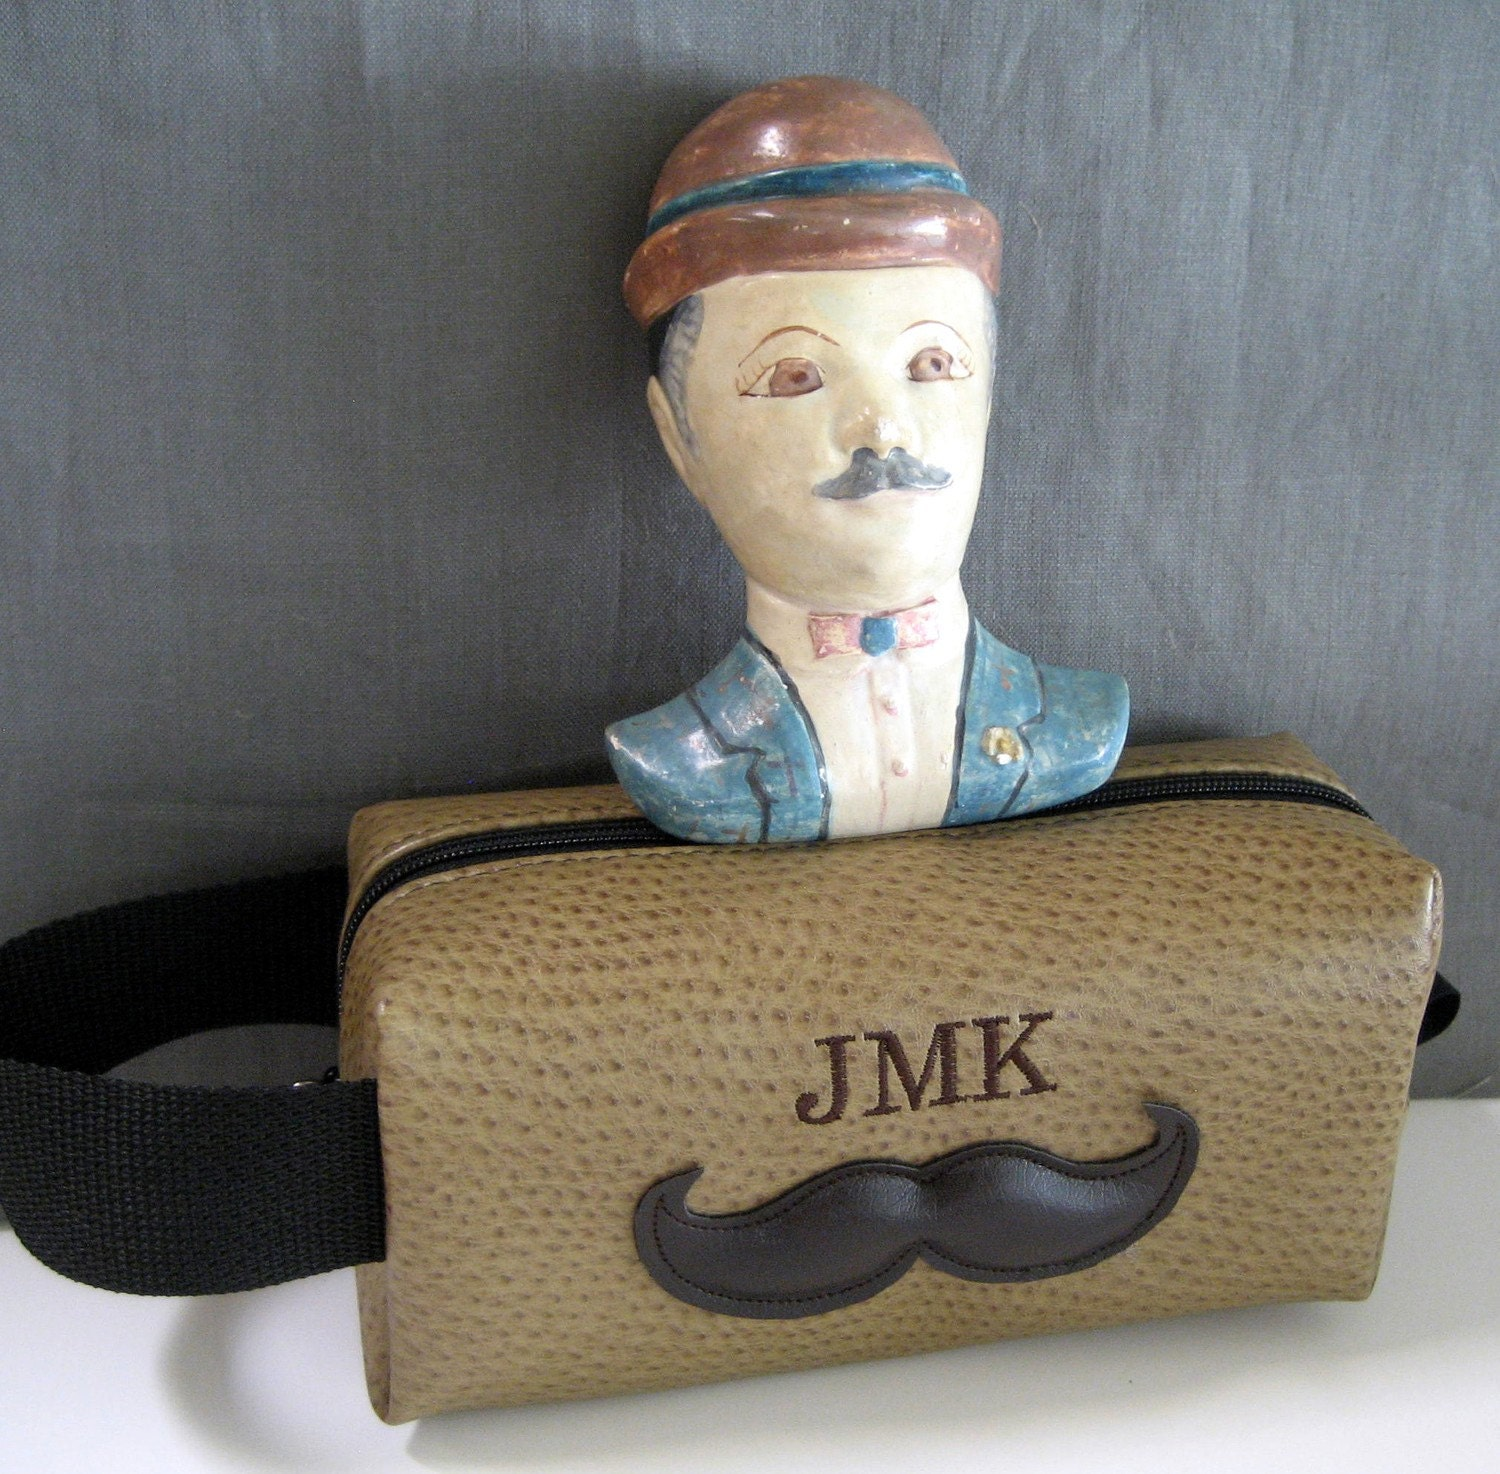 Mr Mustache Personalized Shaving Bag for Groomsmen Featured in BRIDES MAGAZINE